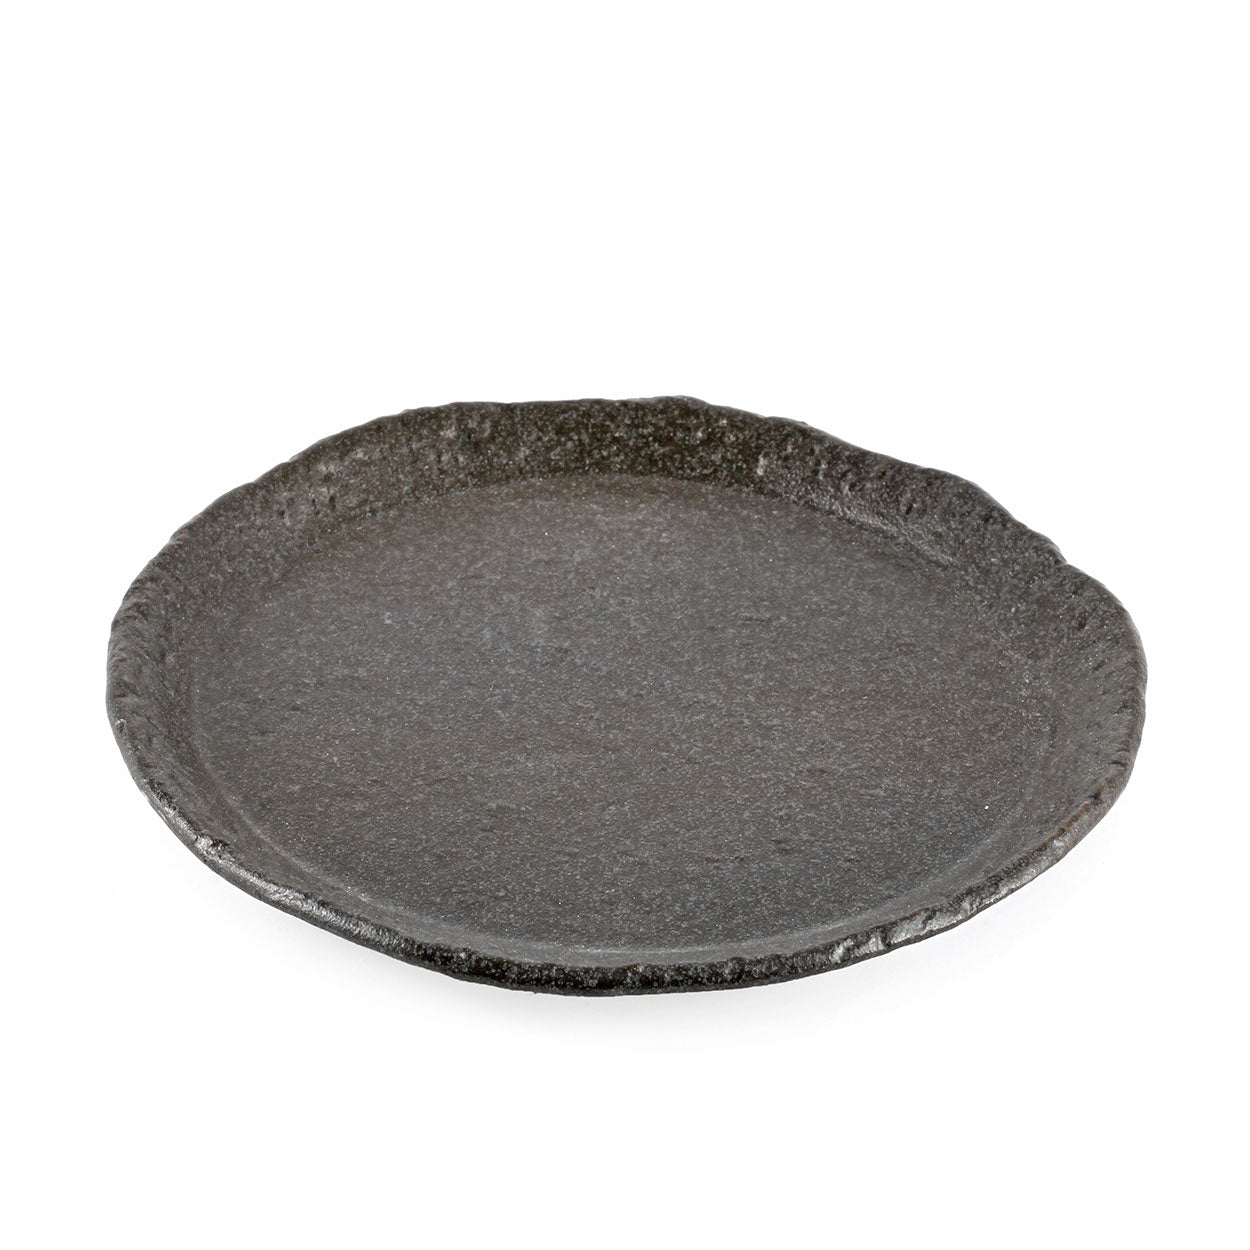 "Textured Charcoal Gray Salad Plate 8.35"" dia"